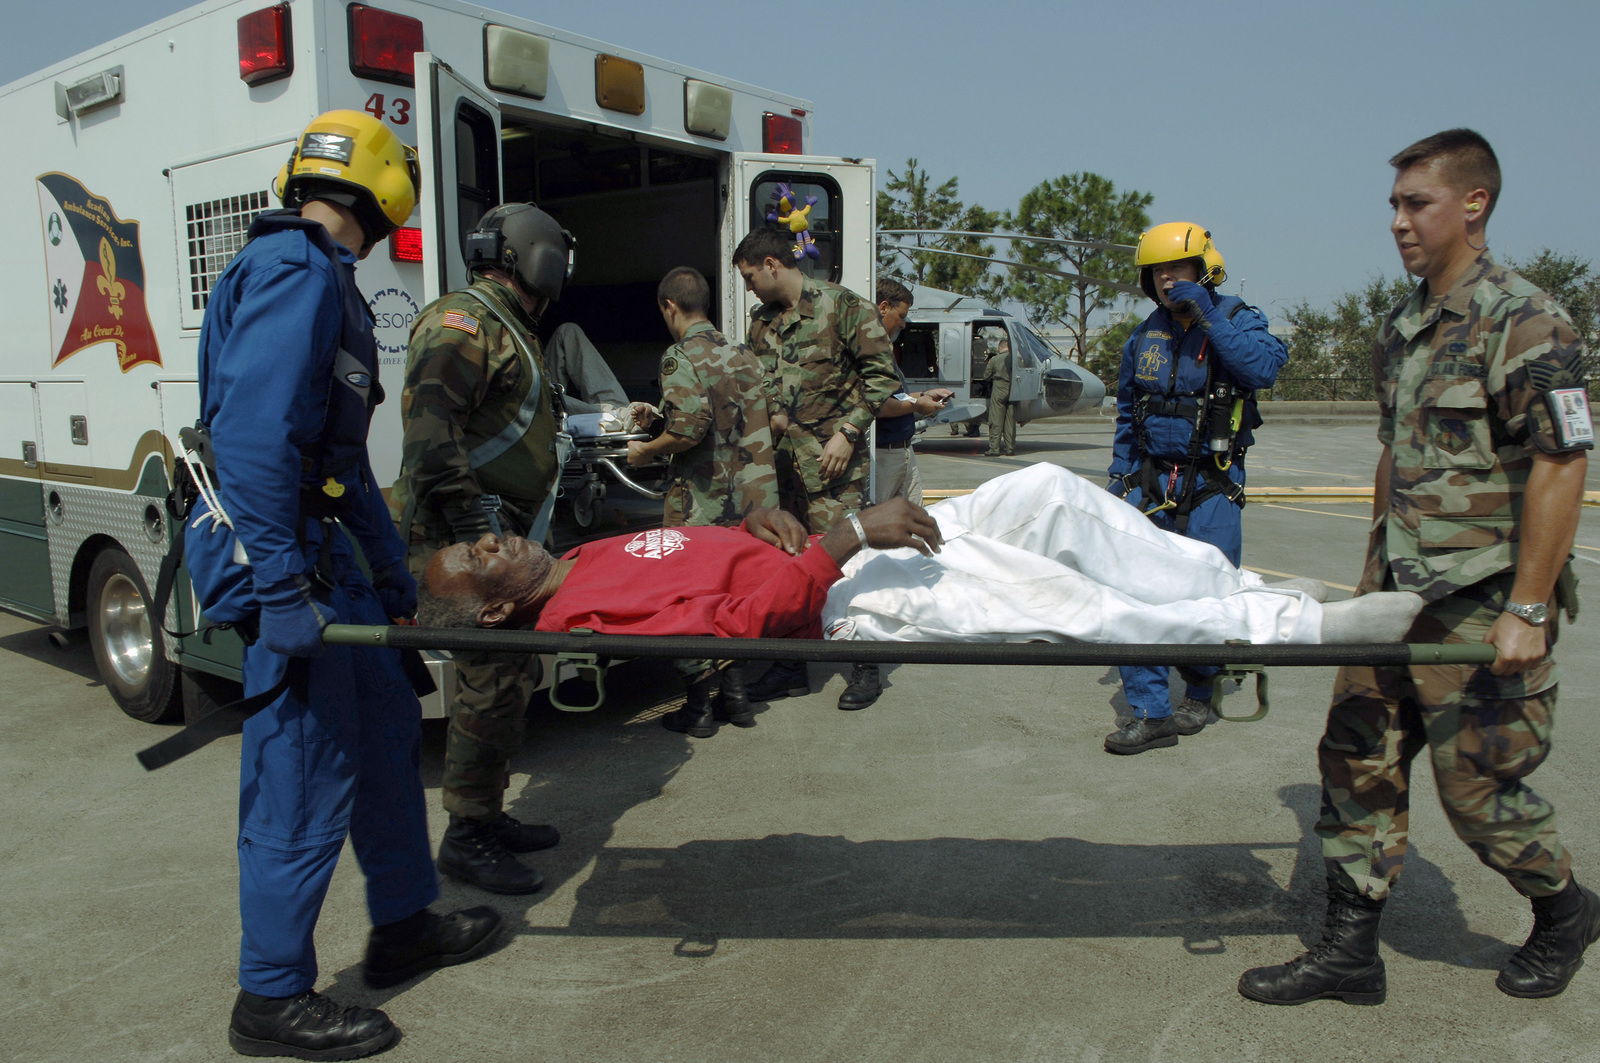 US Army (USA) National Guard Soldiers help to transport an injured man from an ambulance to an awaiting helicopter near the New Orleans Superdome while conducting humanitarian assistance operations following Hurricane Katrina. The USA is assisting in humanitarian assistance operations, led by the Federal Emergency Management Agency (FEMA), in conjunction with the Department of Defense (DOD)